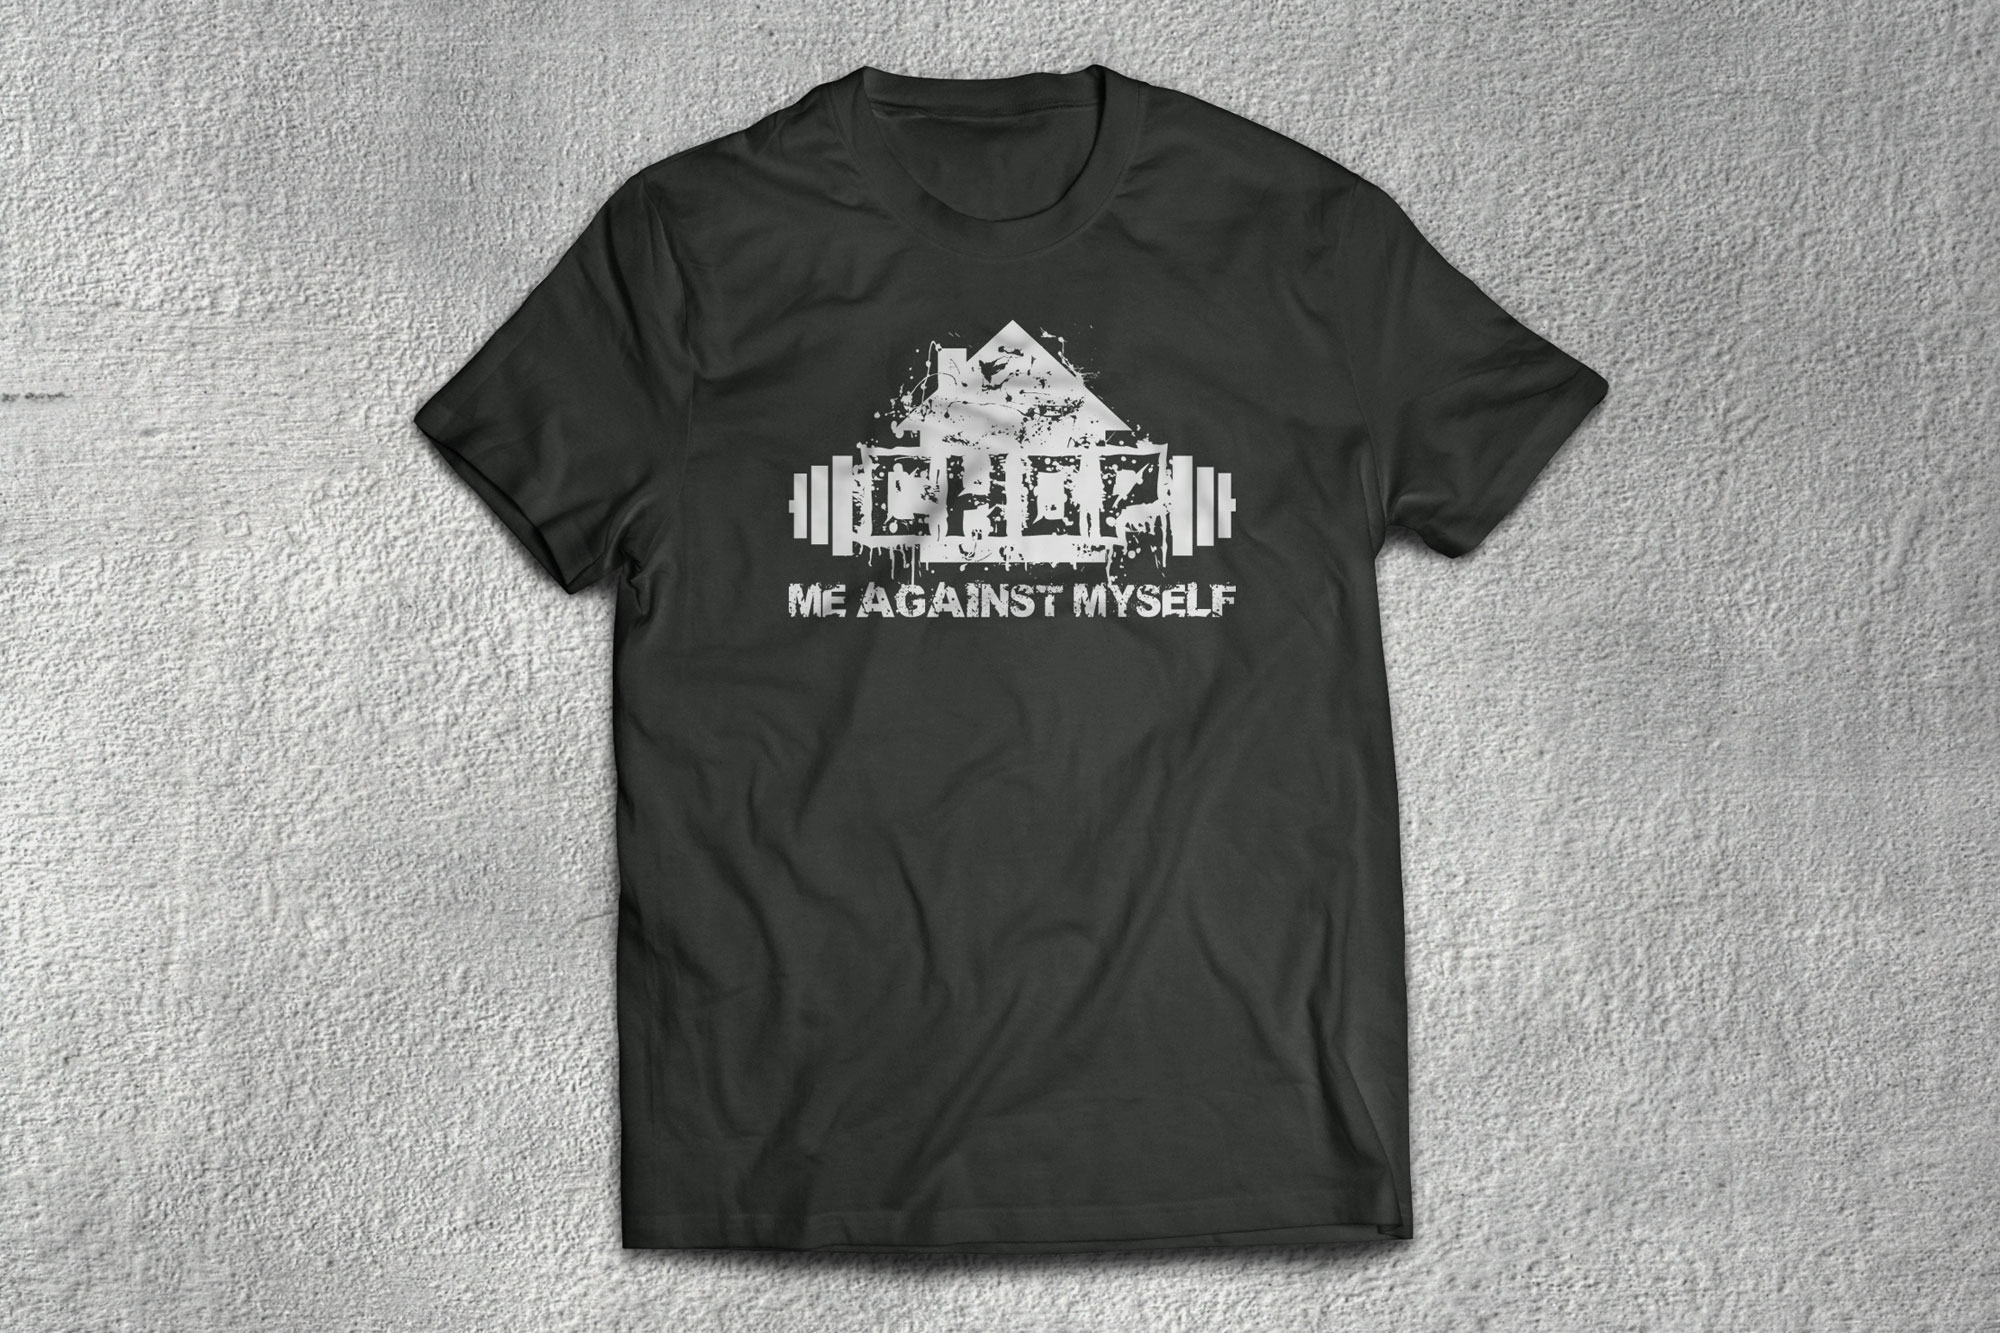 Chad's House of Pain T-Shirt Design